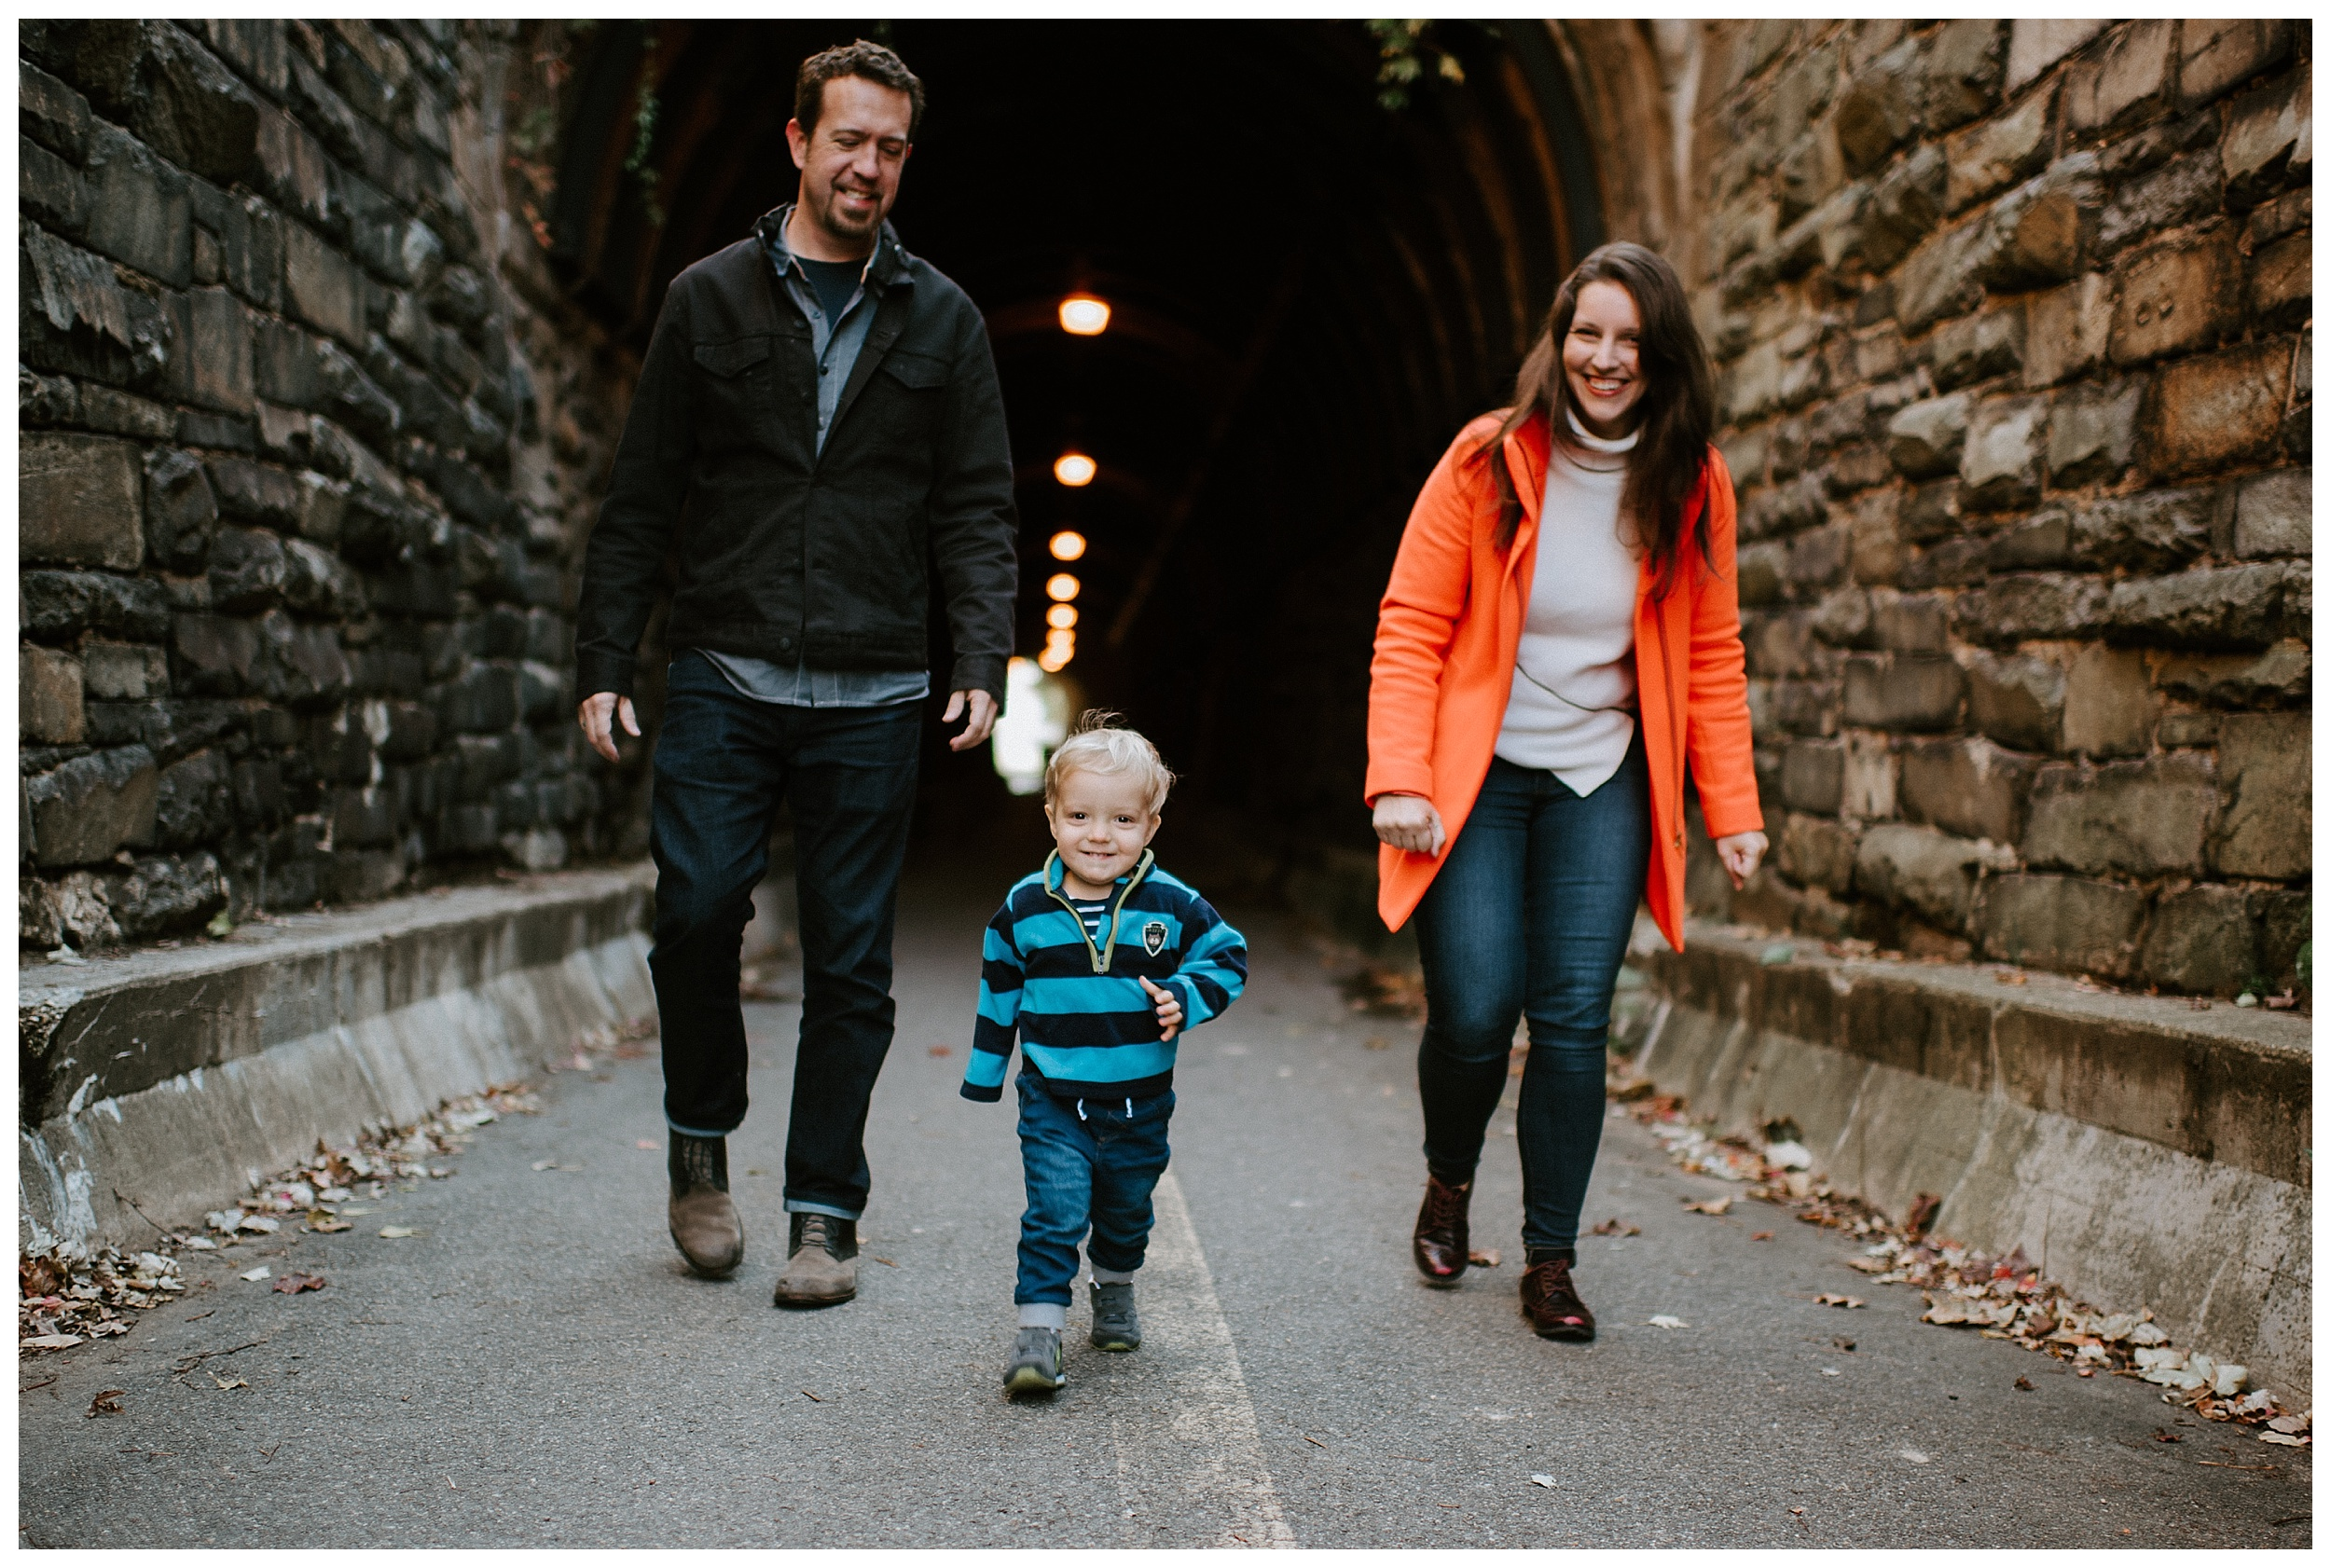 DC-VIRGINIA-FAMILY-PHOTOGRAPHER-CANDID-NATURAL-LIFESTYLE-MEGAN-GRAHAM-PHOTOGRAPHY-ALEXANDRIA-WILKES-TUNNEL_0123.jpg